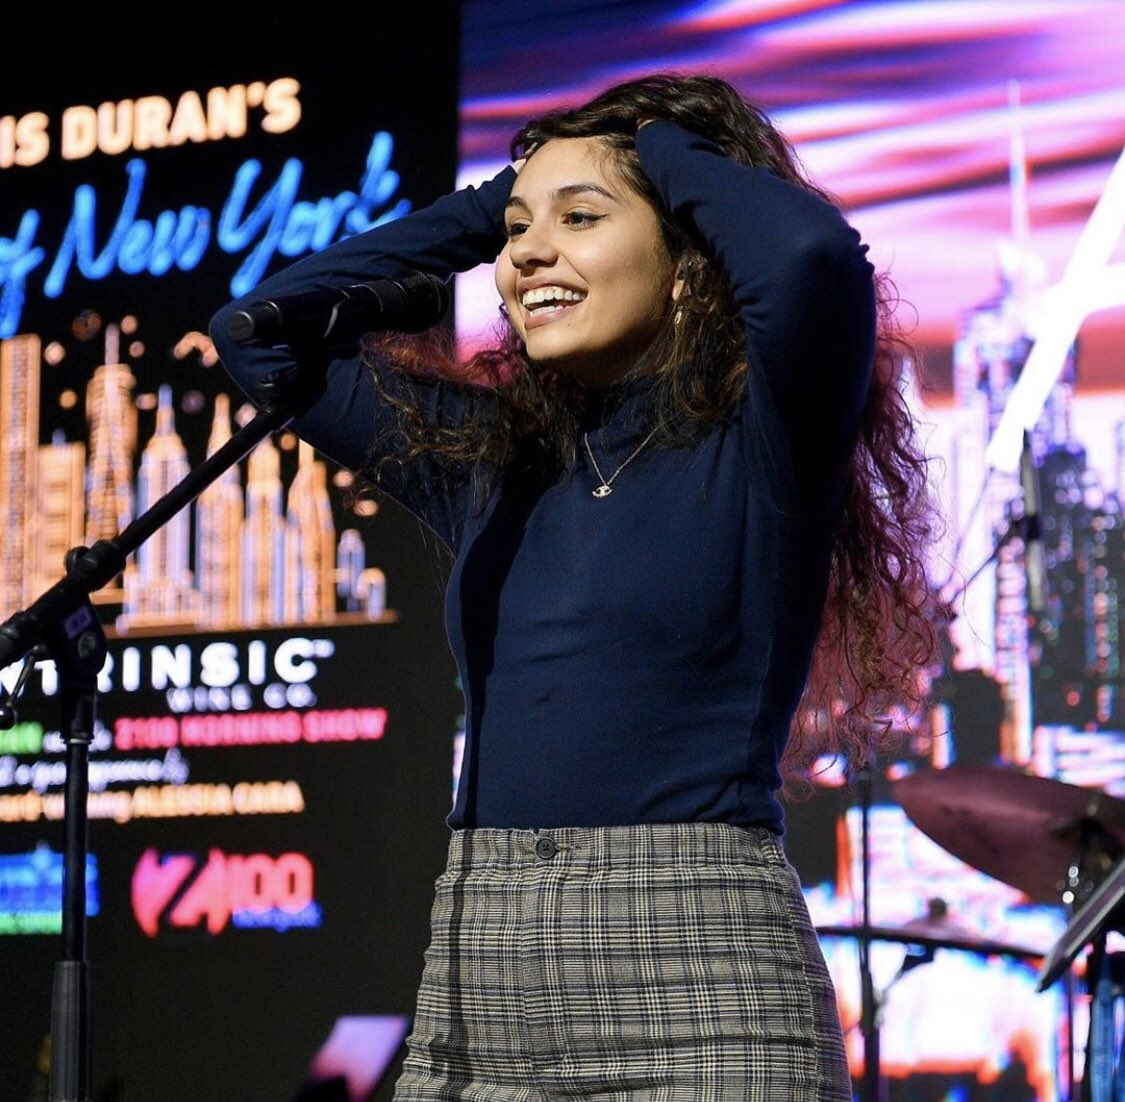 Who's going to see @alessiacara on tour? ⬇️